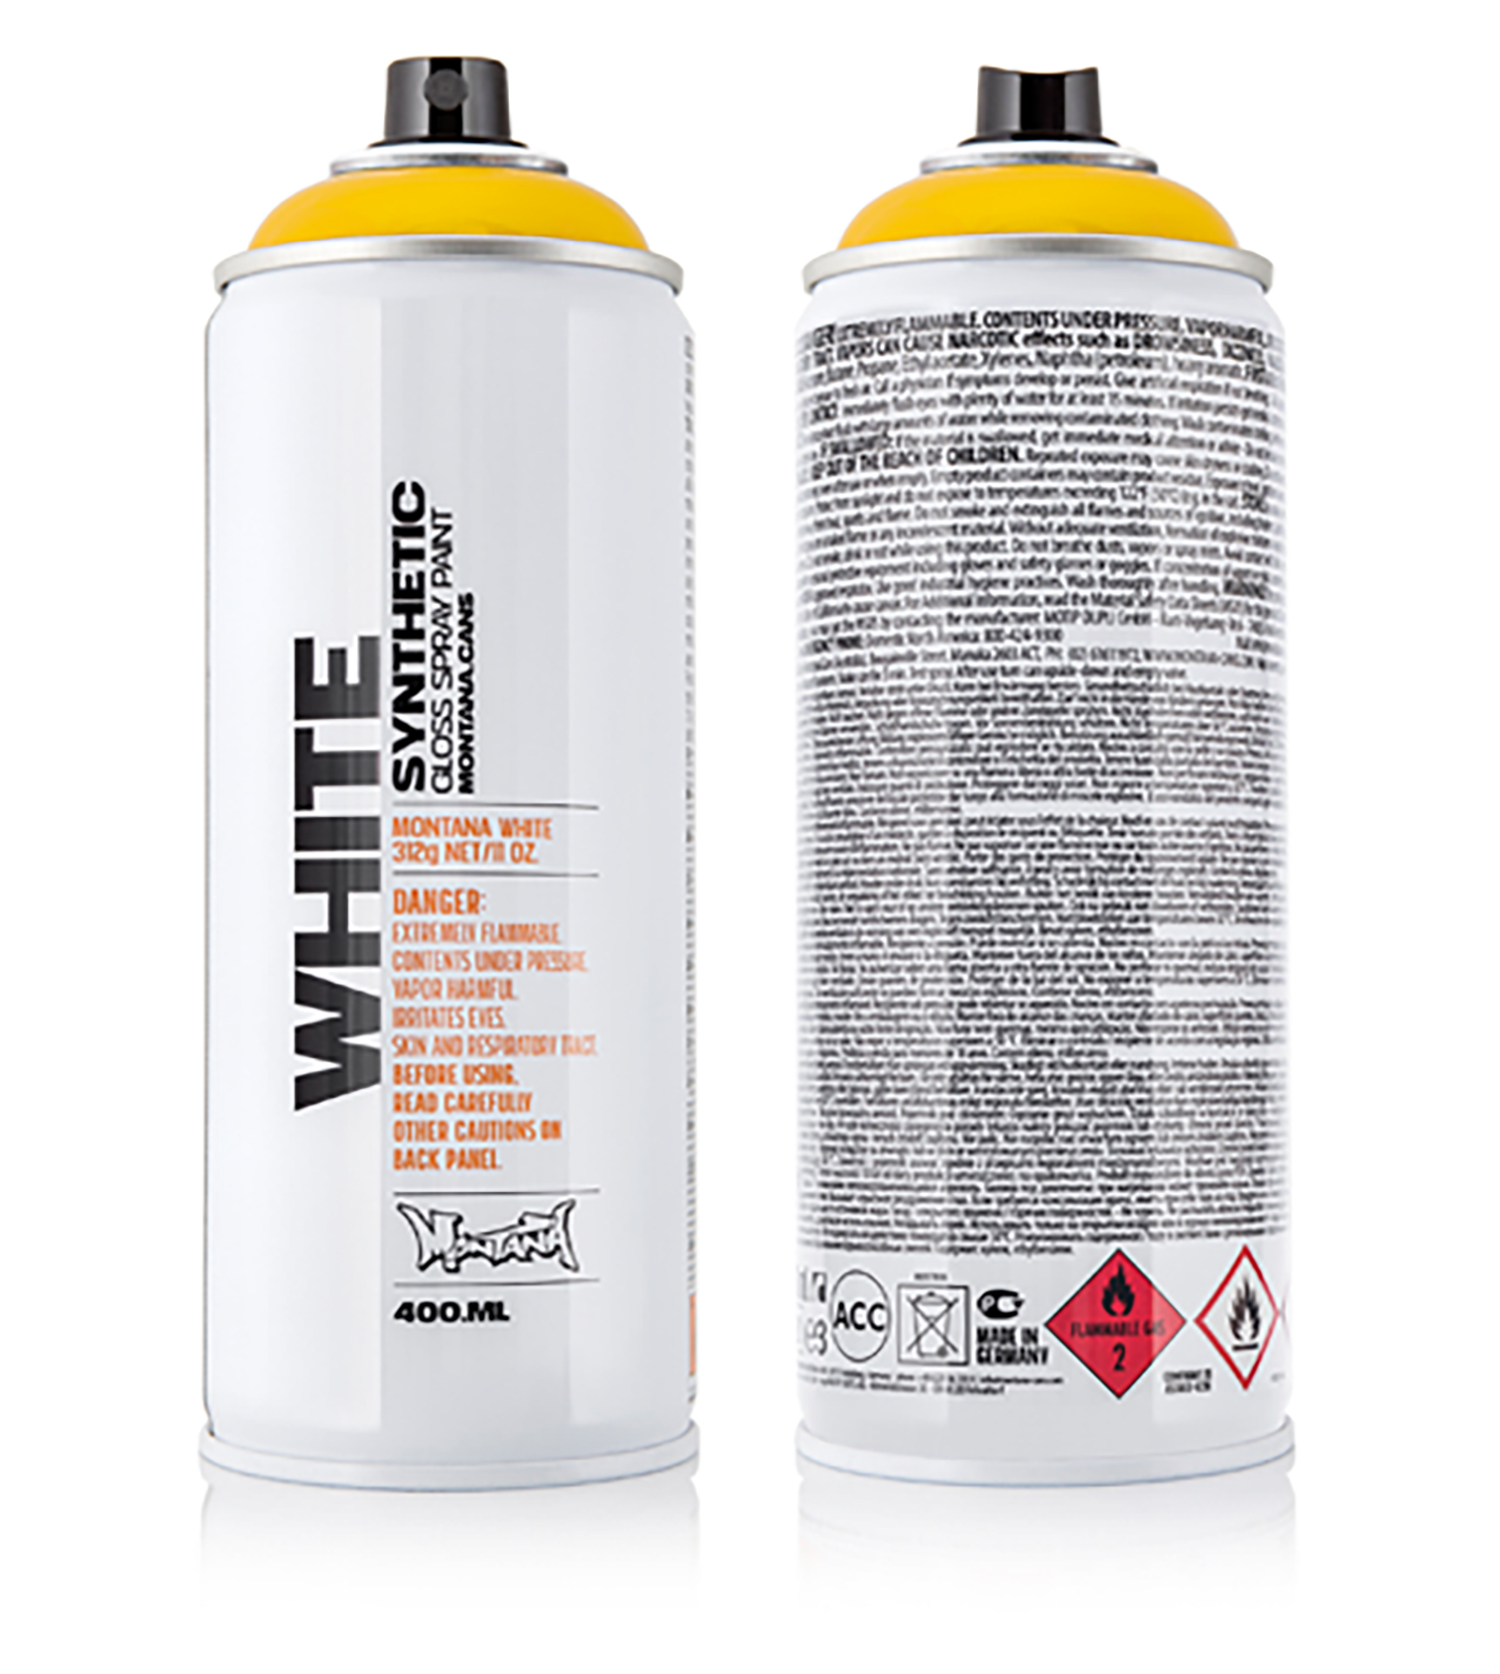 MONTANA-WHITE-SPRAY-400ML-1020